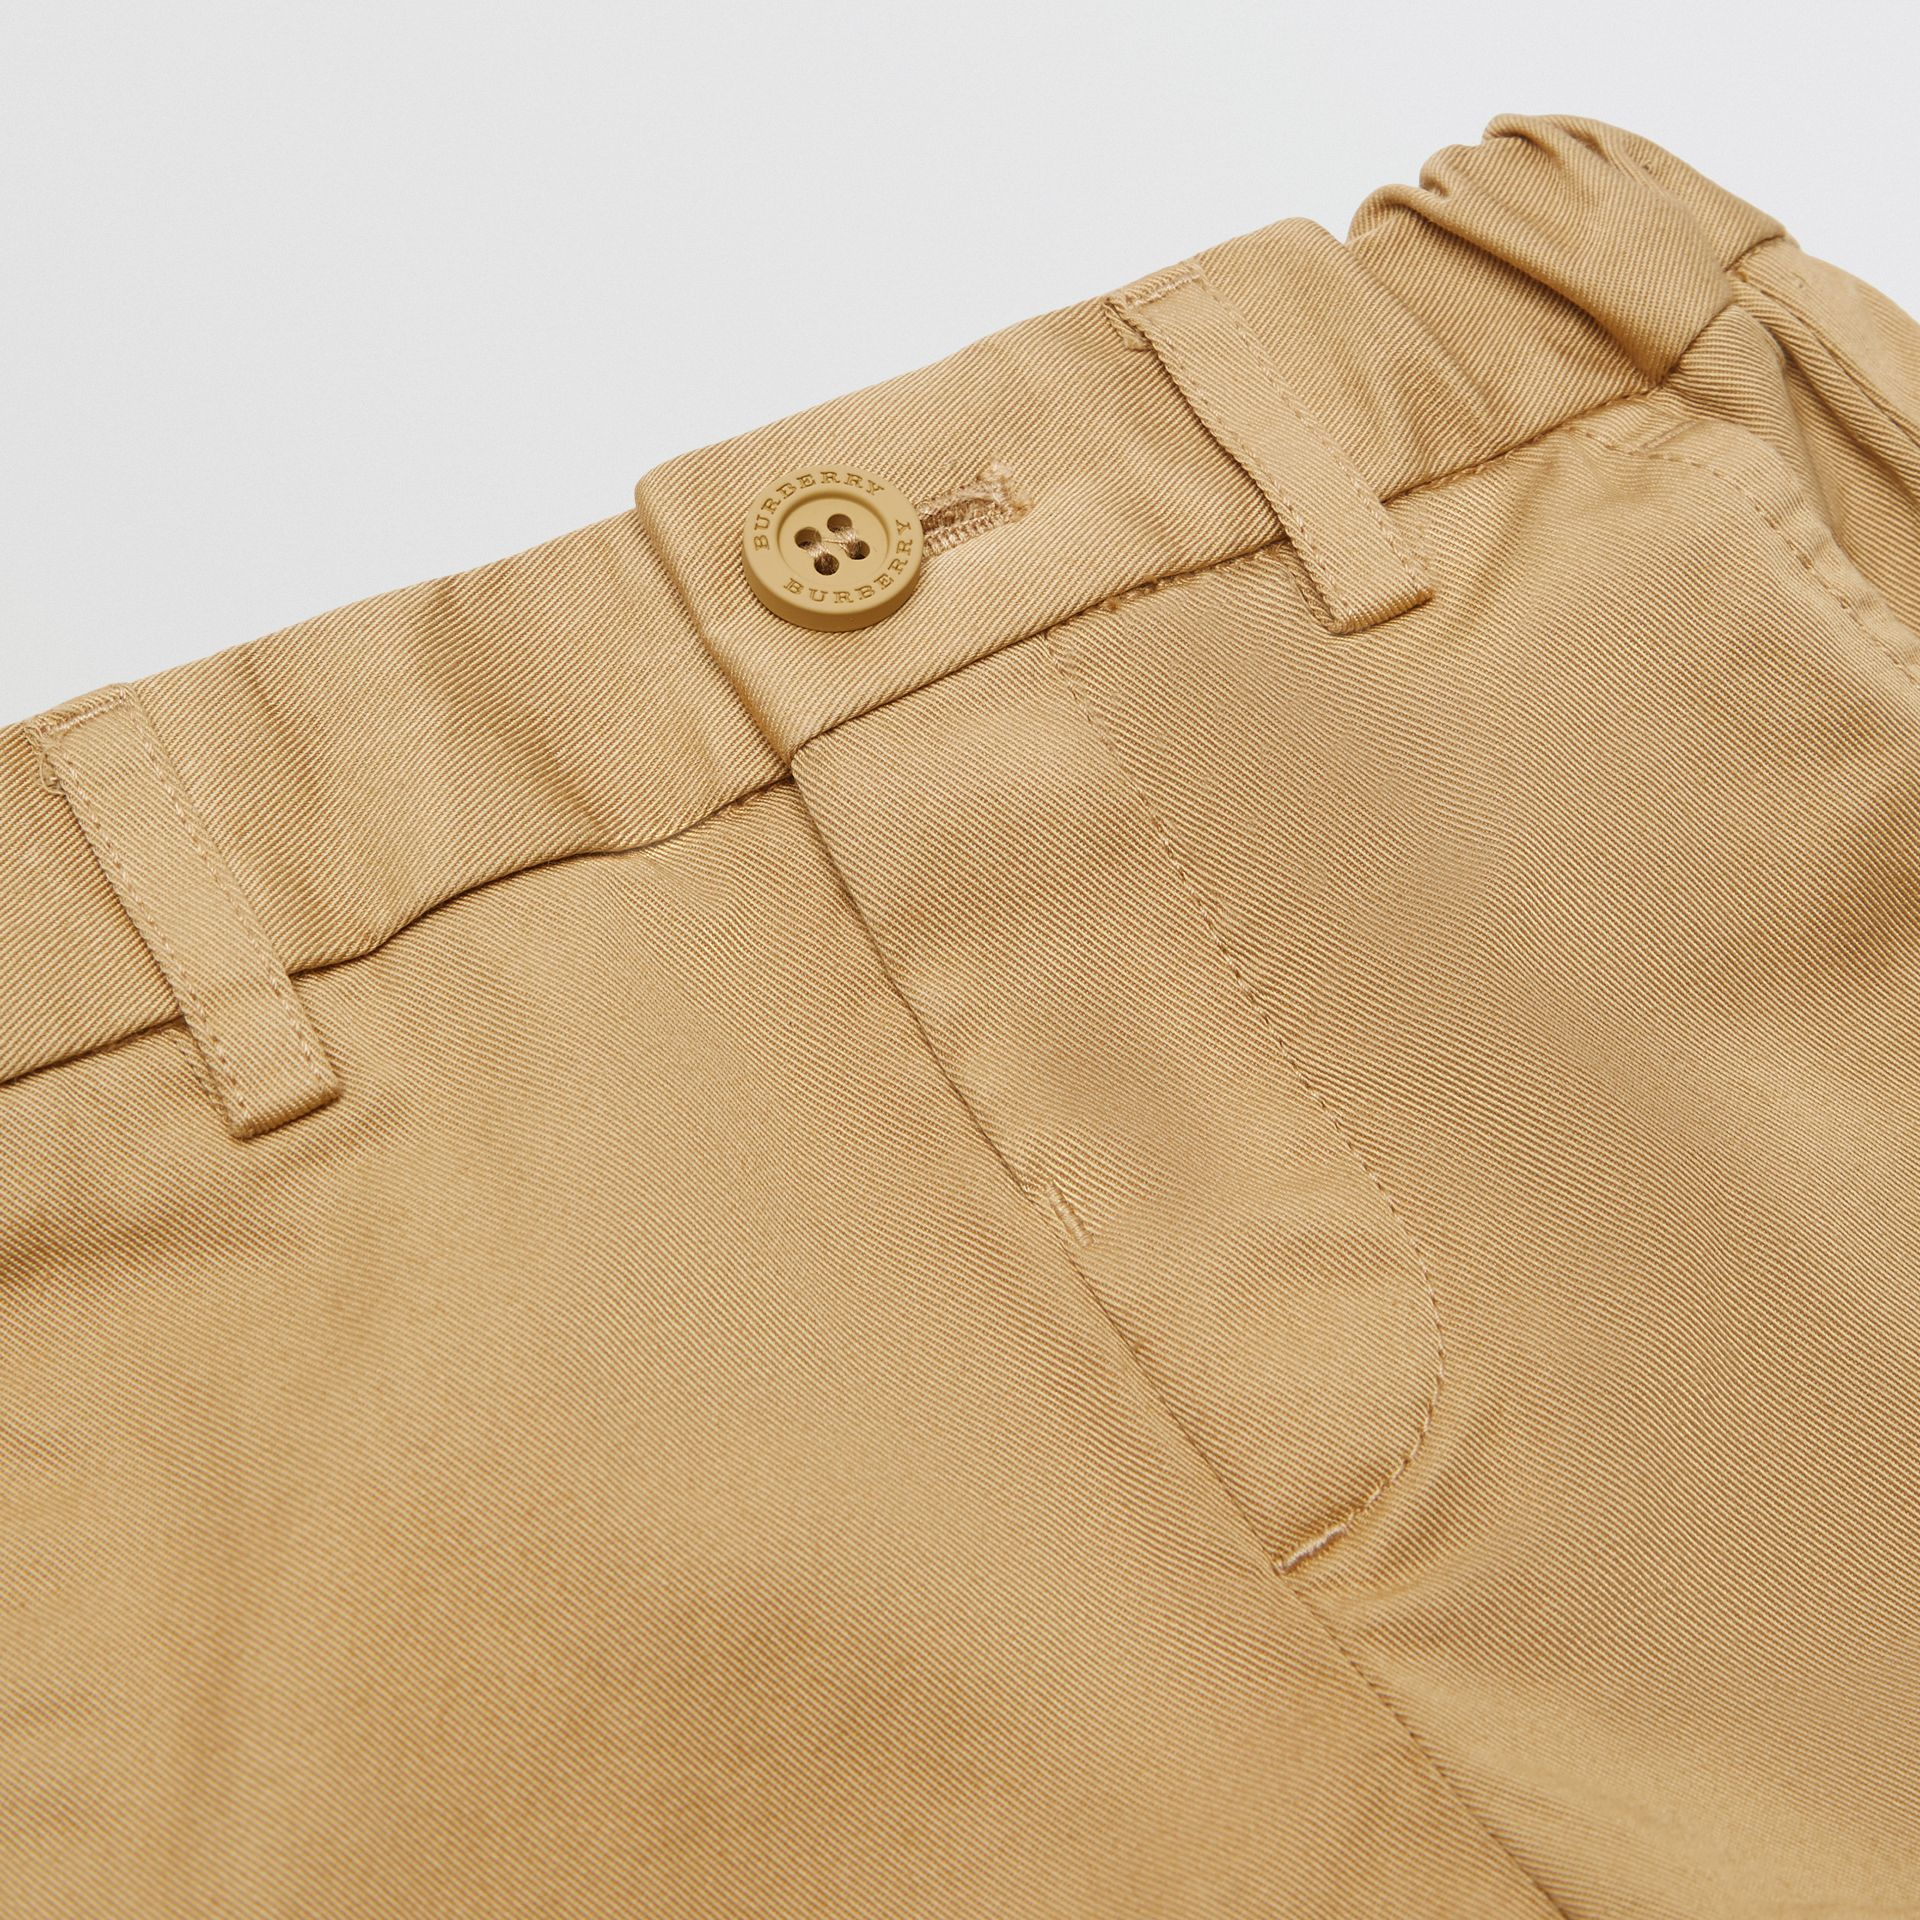 Cotton Chinos in Taupe - Children | Burberry - gallery image 1